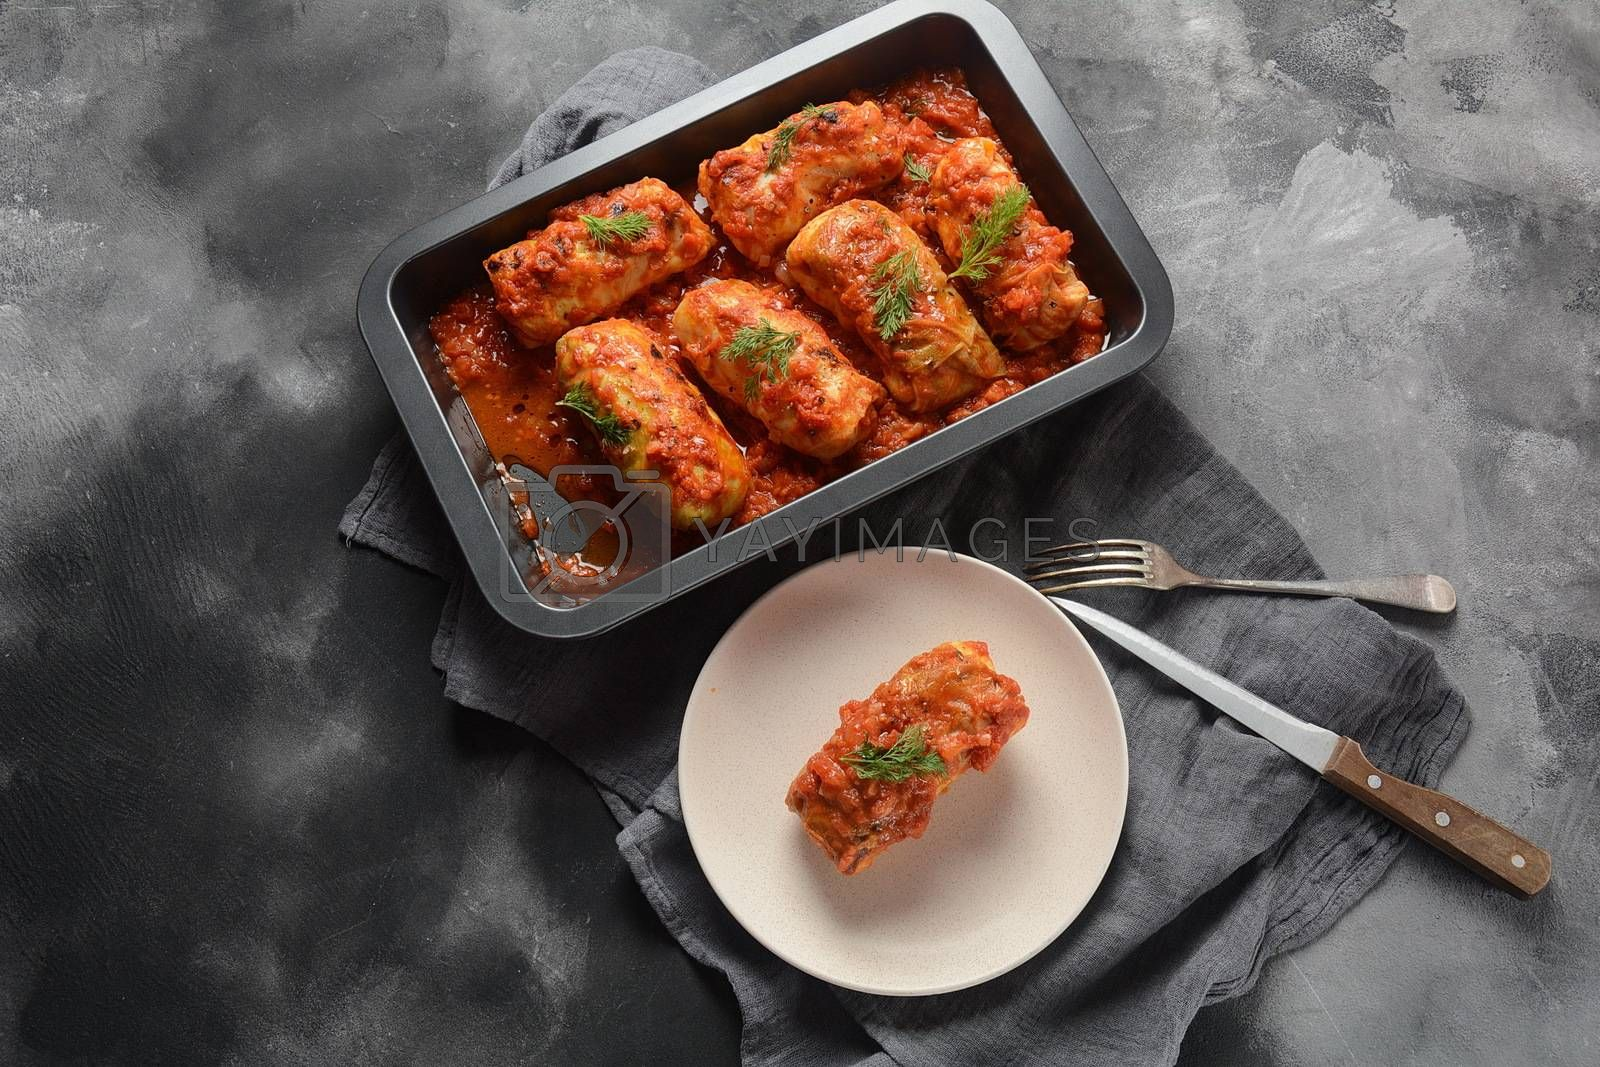 Cabbage rolls by Hanin Nataly